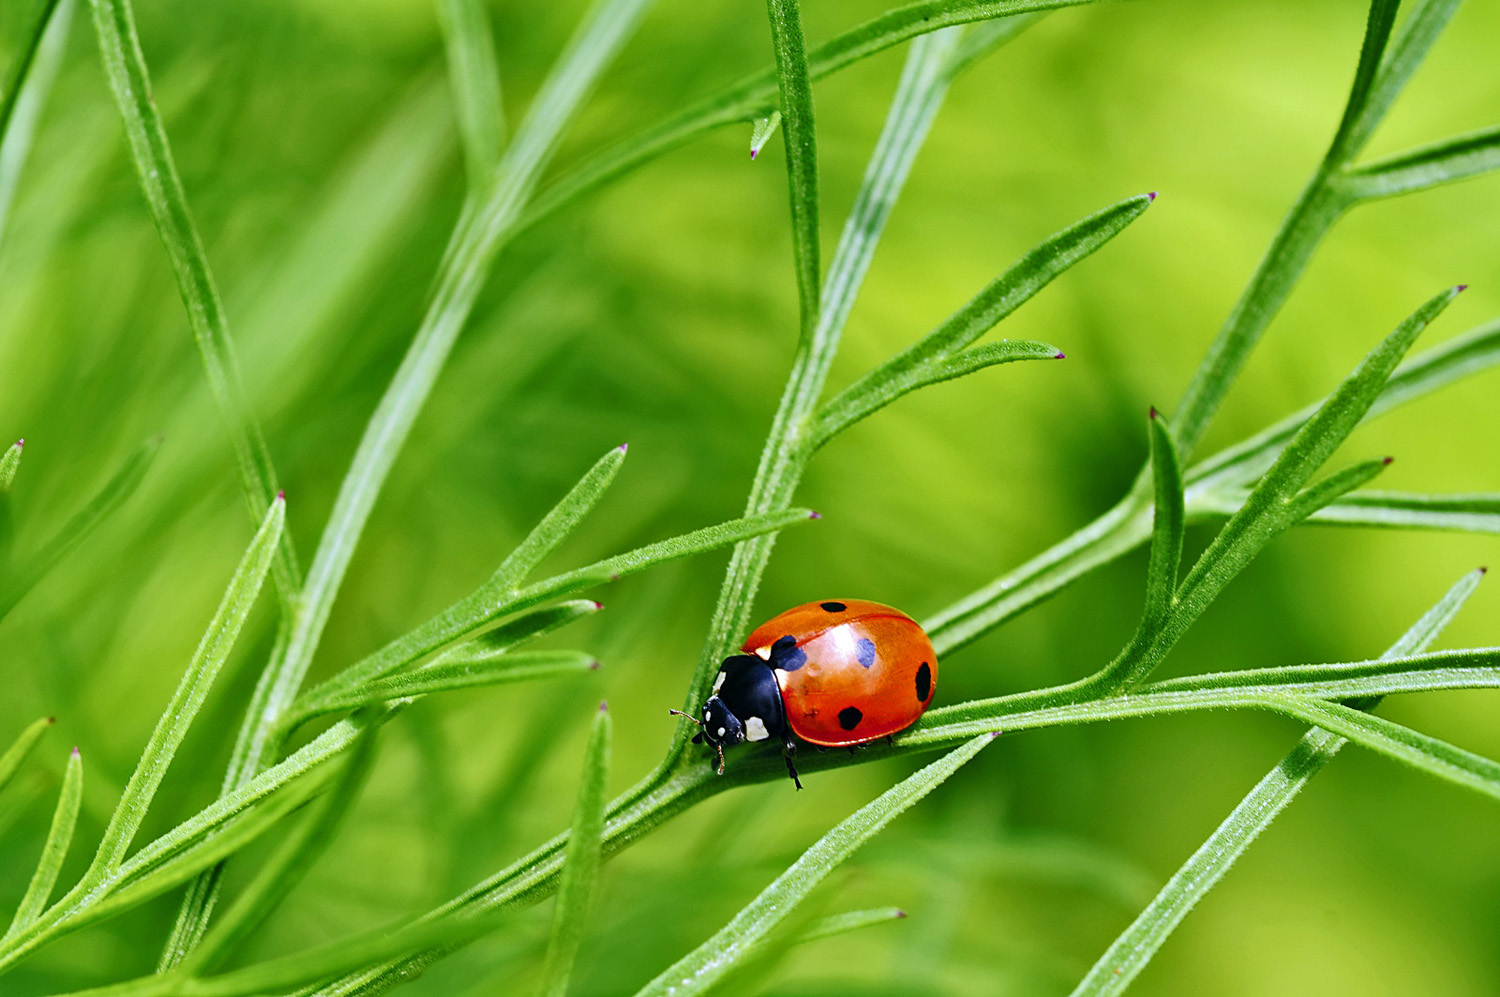 Insects that look like ladybugs